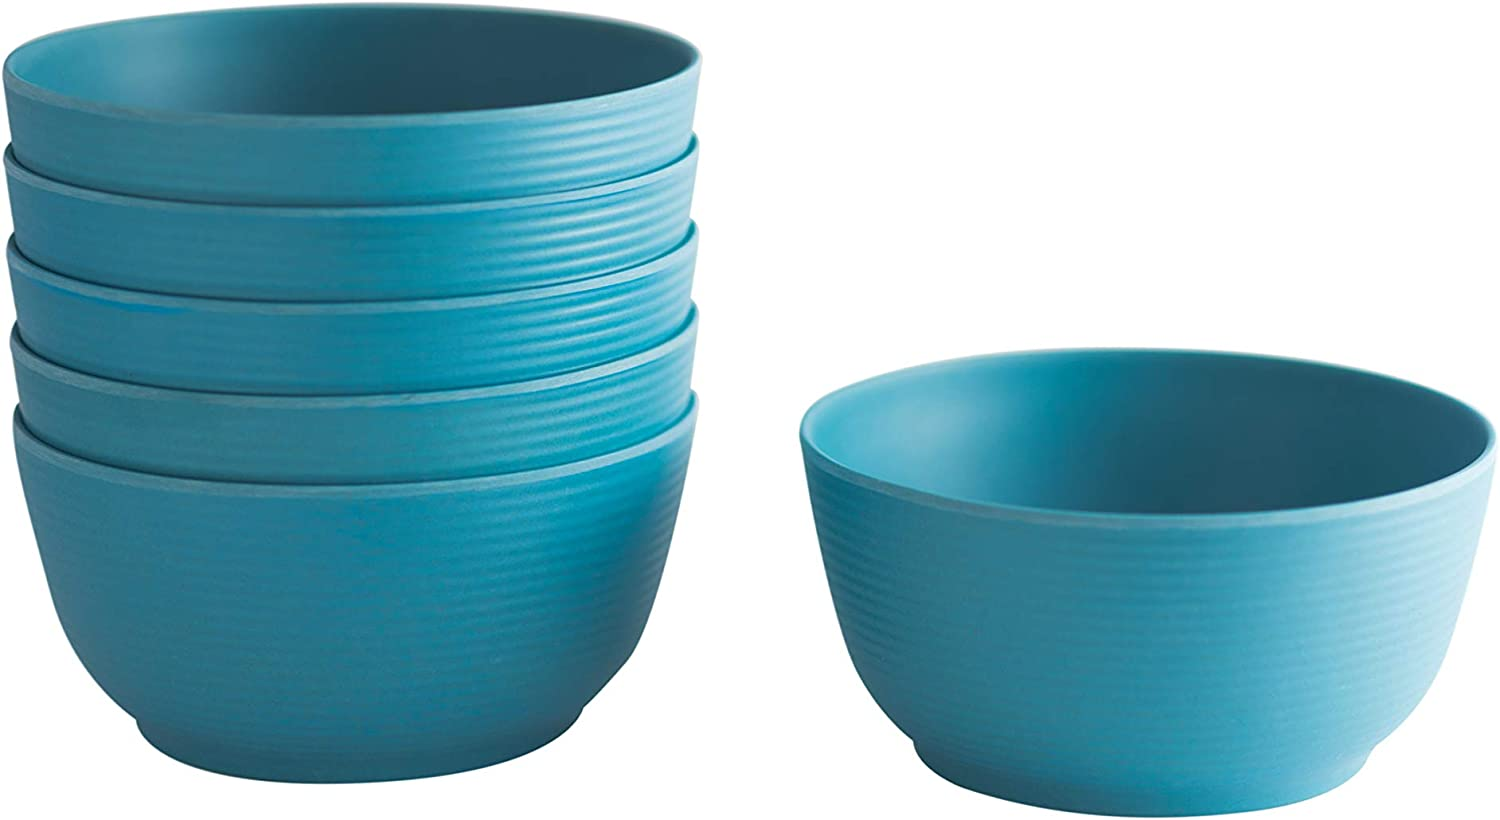 Natura Green- Bamboo Whirl Bowls- Set of 6-24 oz. (700ml) each (Blue)